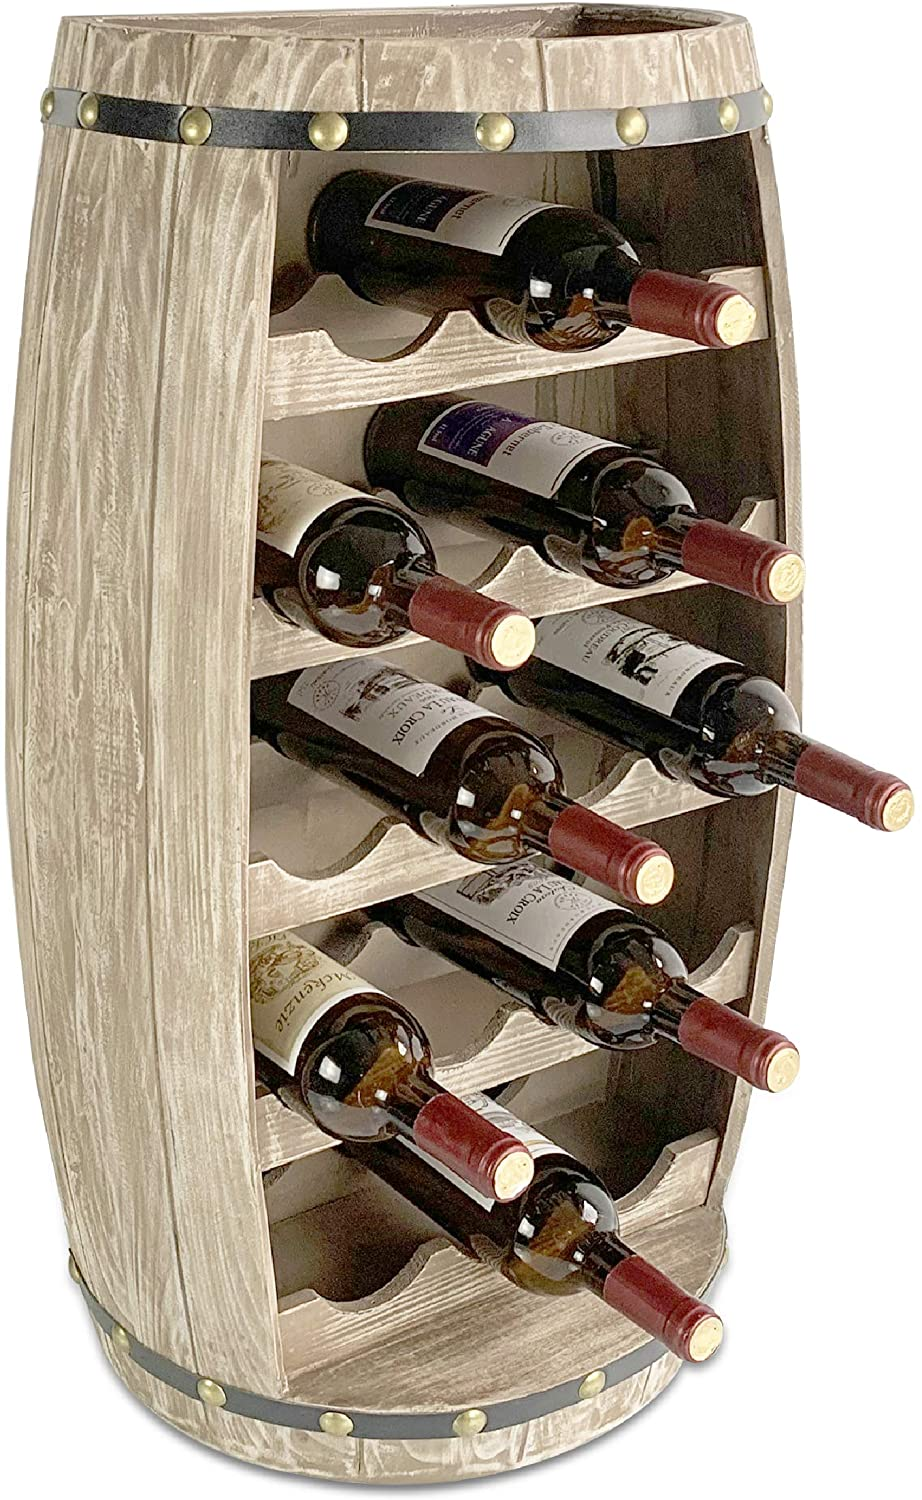 CoTa Global Modern Alexander Wall Mounted Wine Rack - 18 Wine Bottles Freestanding Wooden Barrel Wine Holder, Hanging Bottle Rack or Floor Stand, Wine Storage Shelf Organizer for Wine Bar, Home Decor